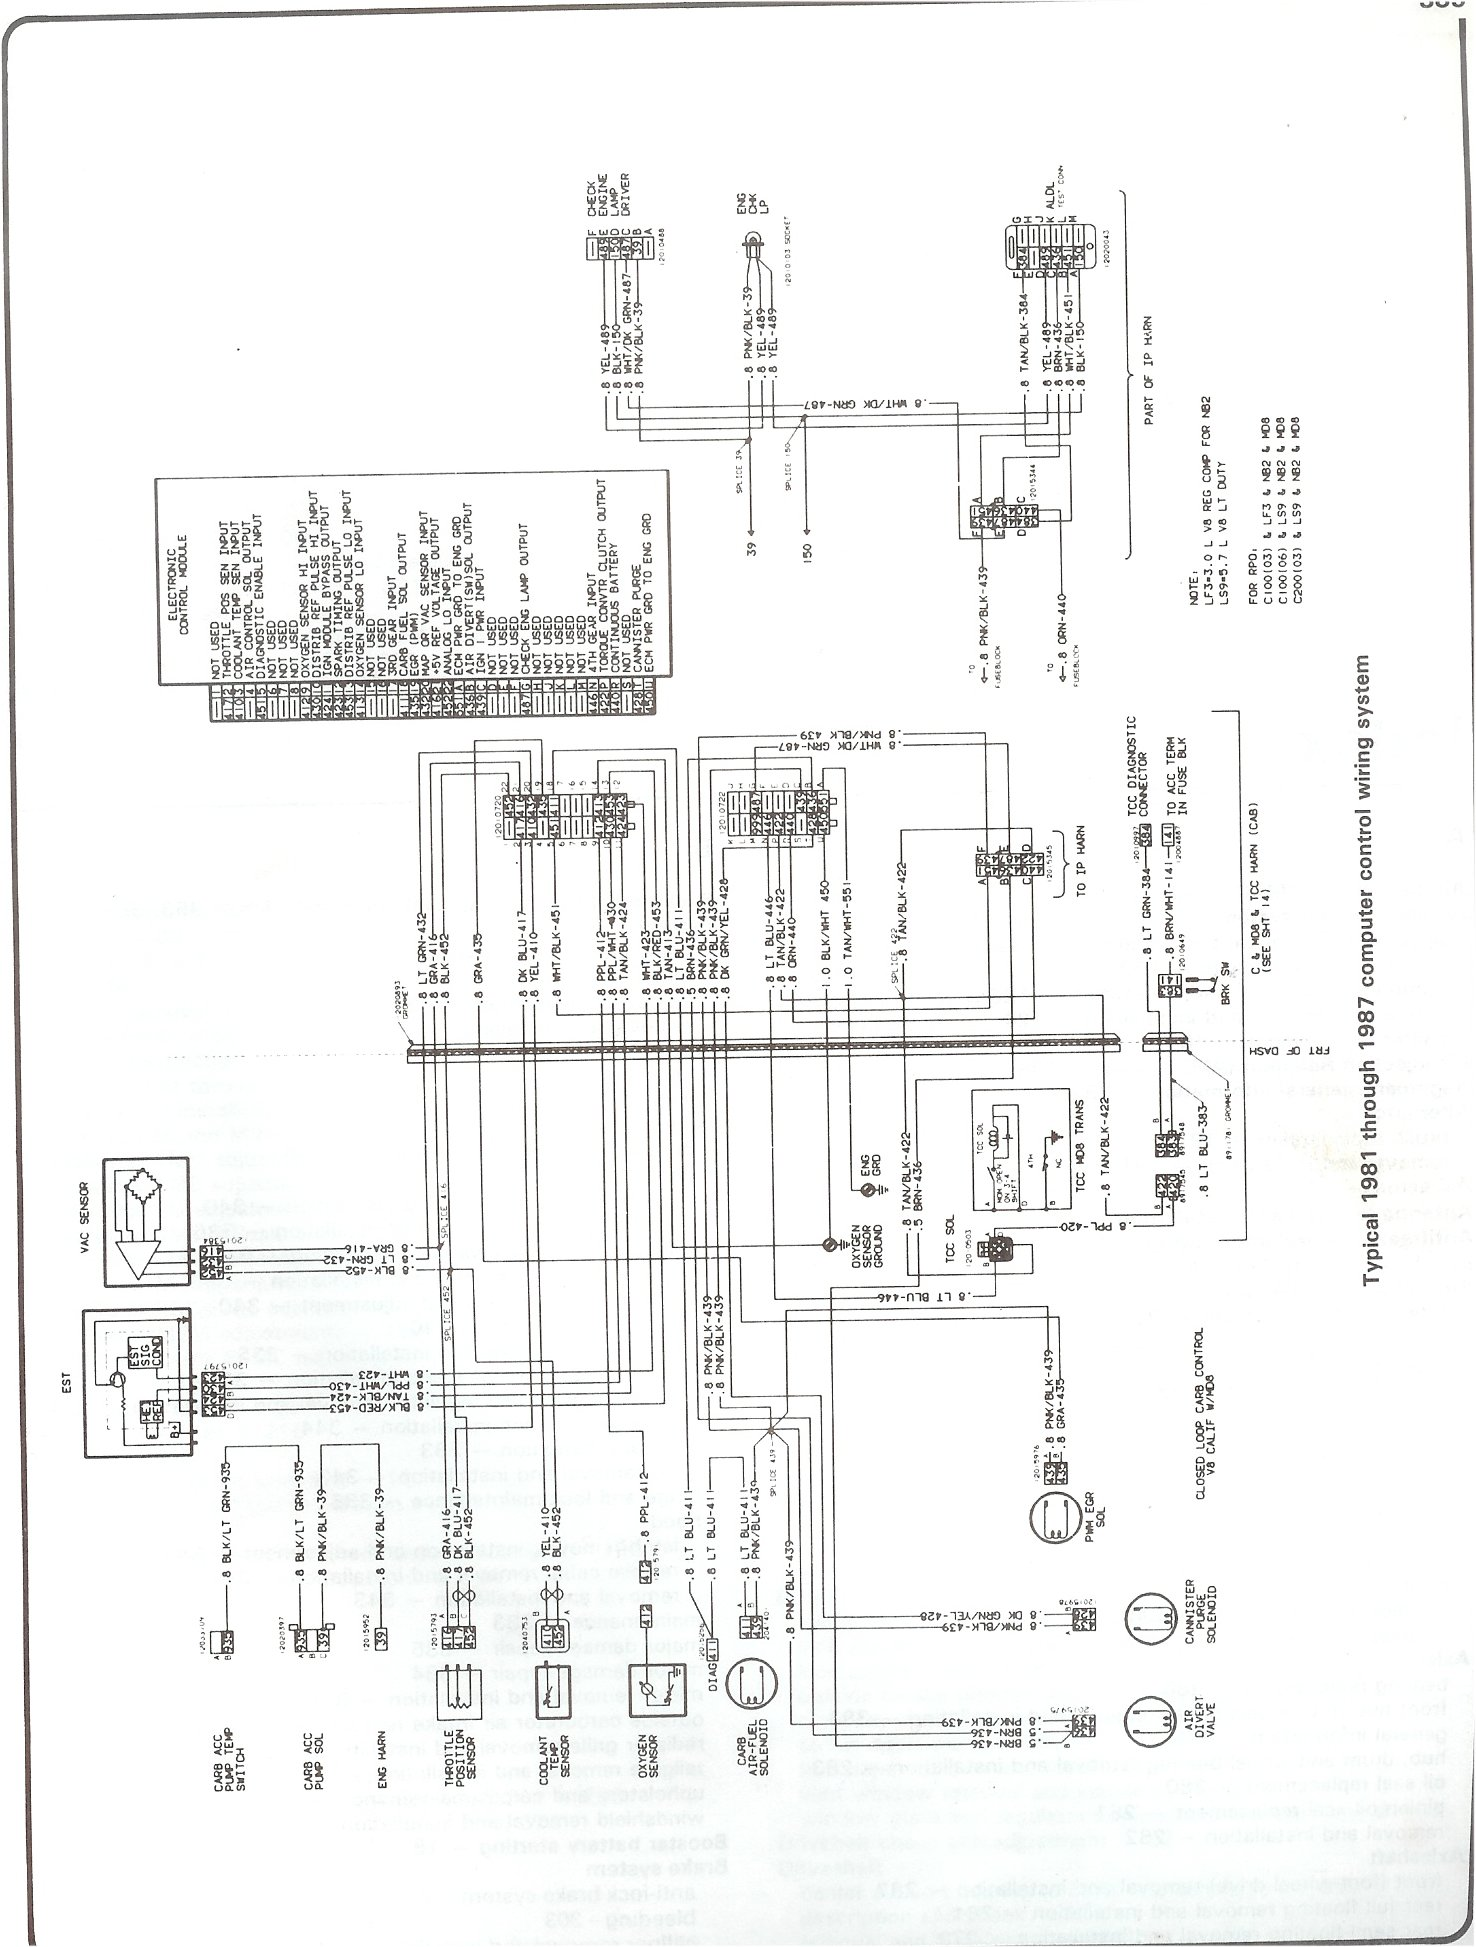 hight resolution of 83 chevy c10 wiring diagram wiring diagram 1983 chevy truck wiring diagram